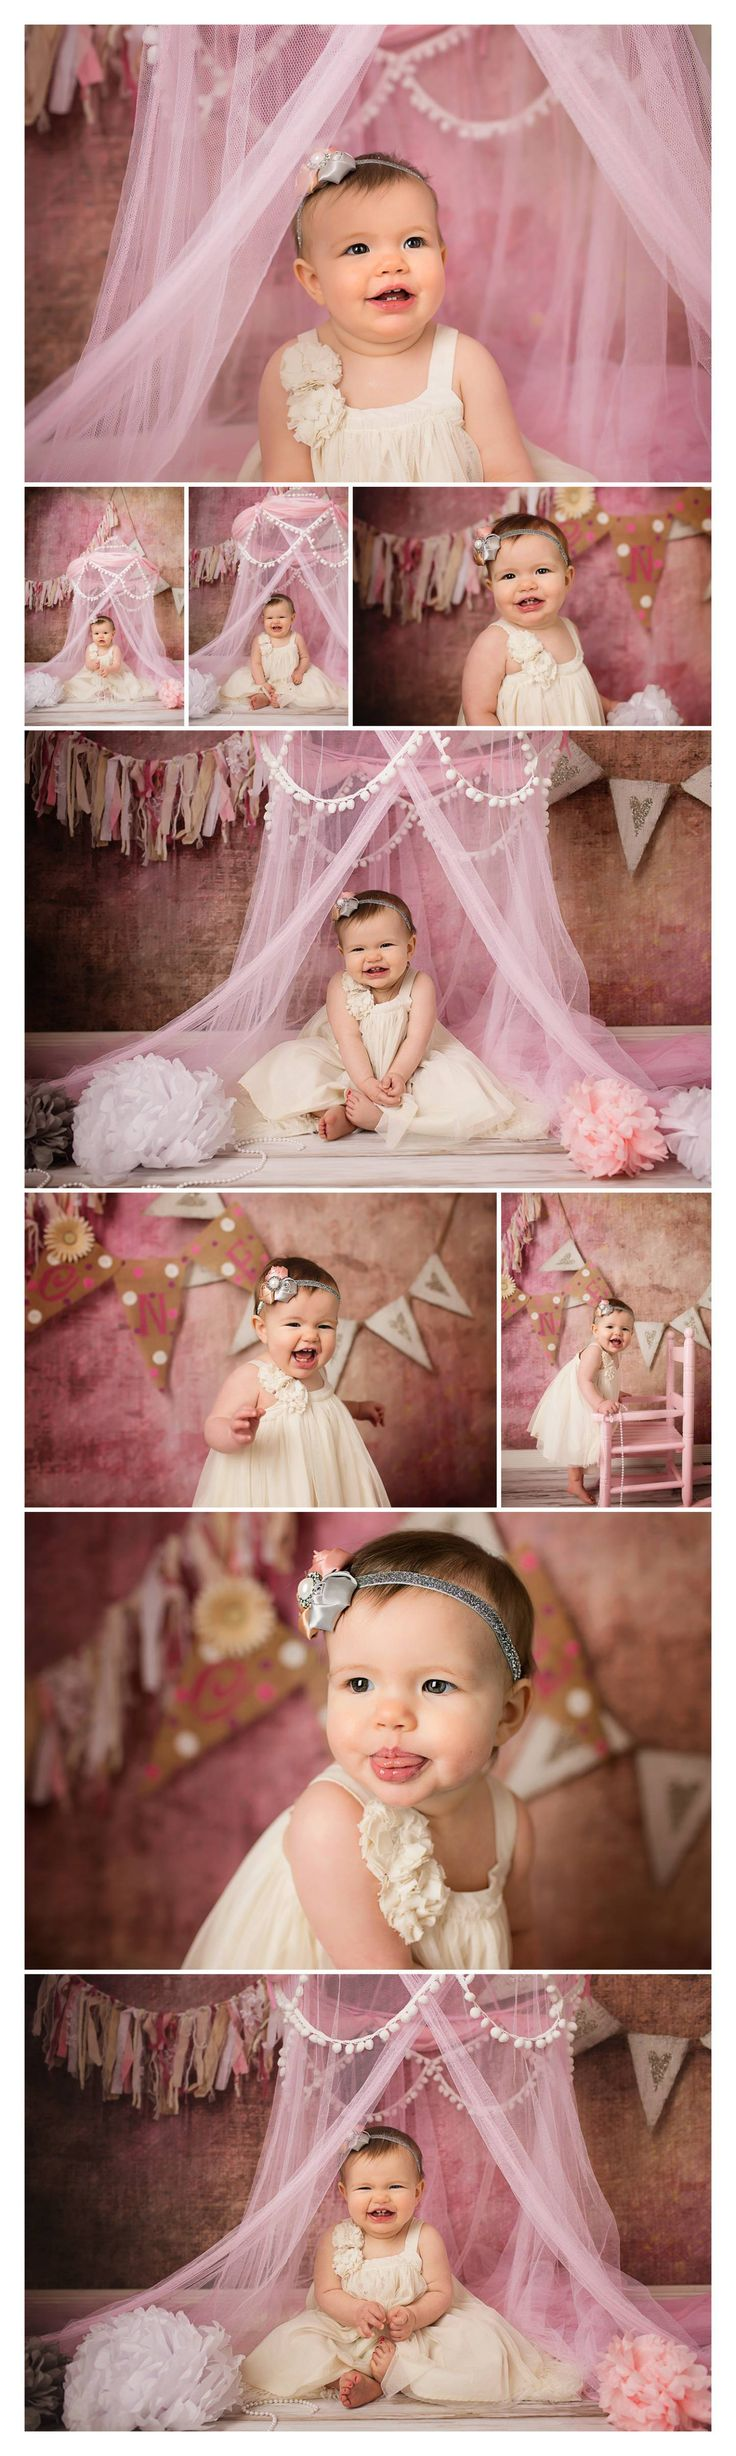 Maura| First Birthday Pictures » Julie Pottorff Photography | Southern IL Wedding & Portrait Photographer